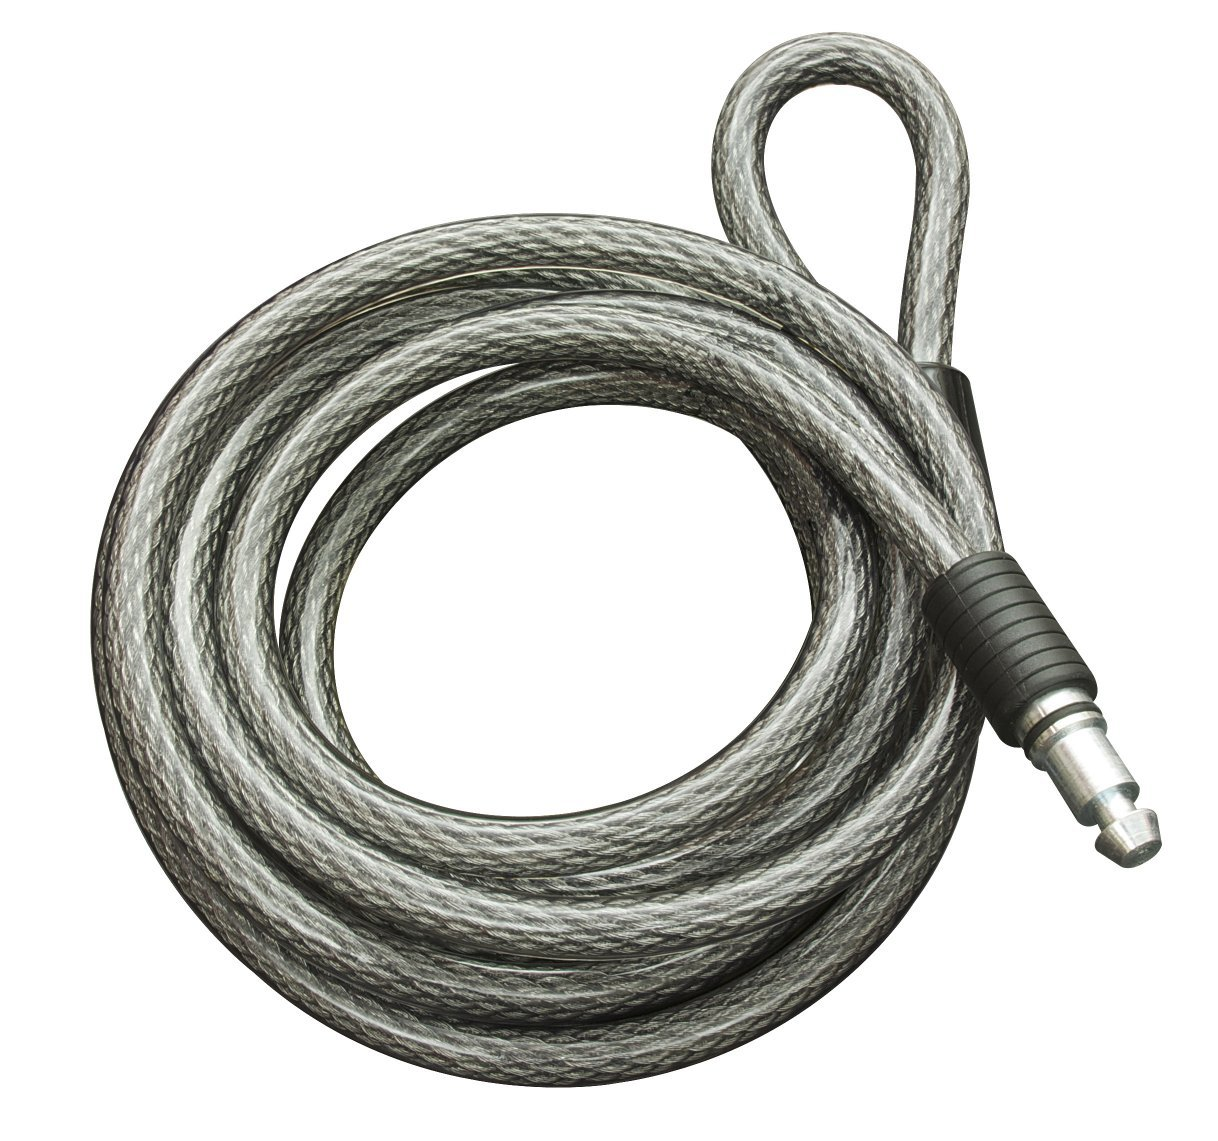 Master Lock 8256DAT Spare Cable for Integrated Cable and Lock